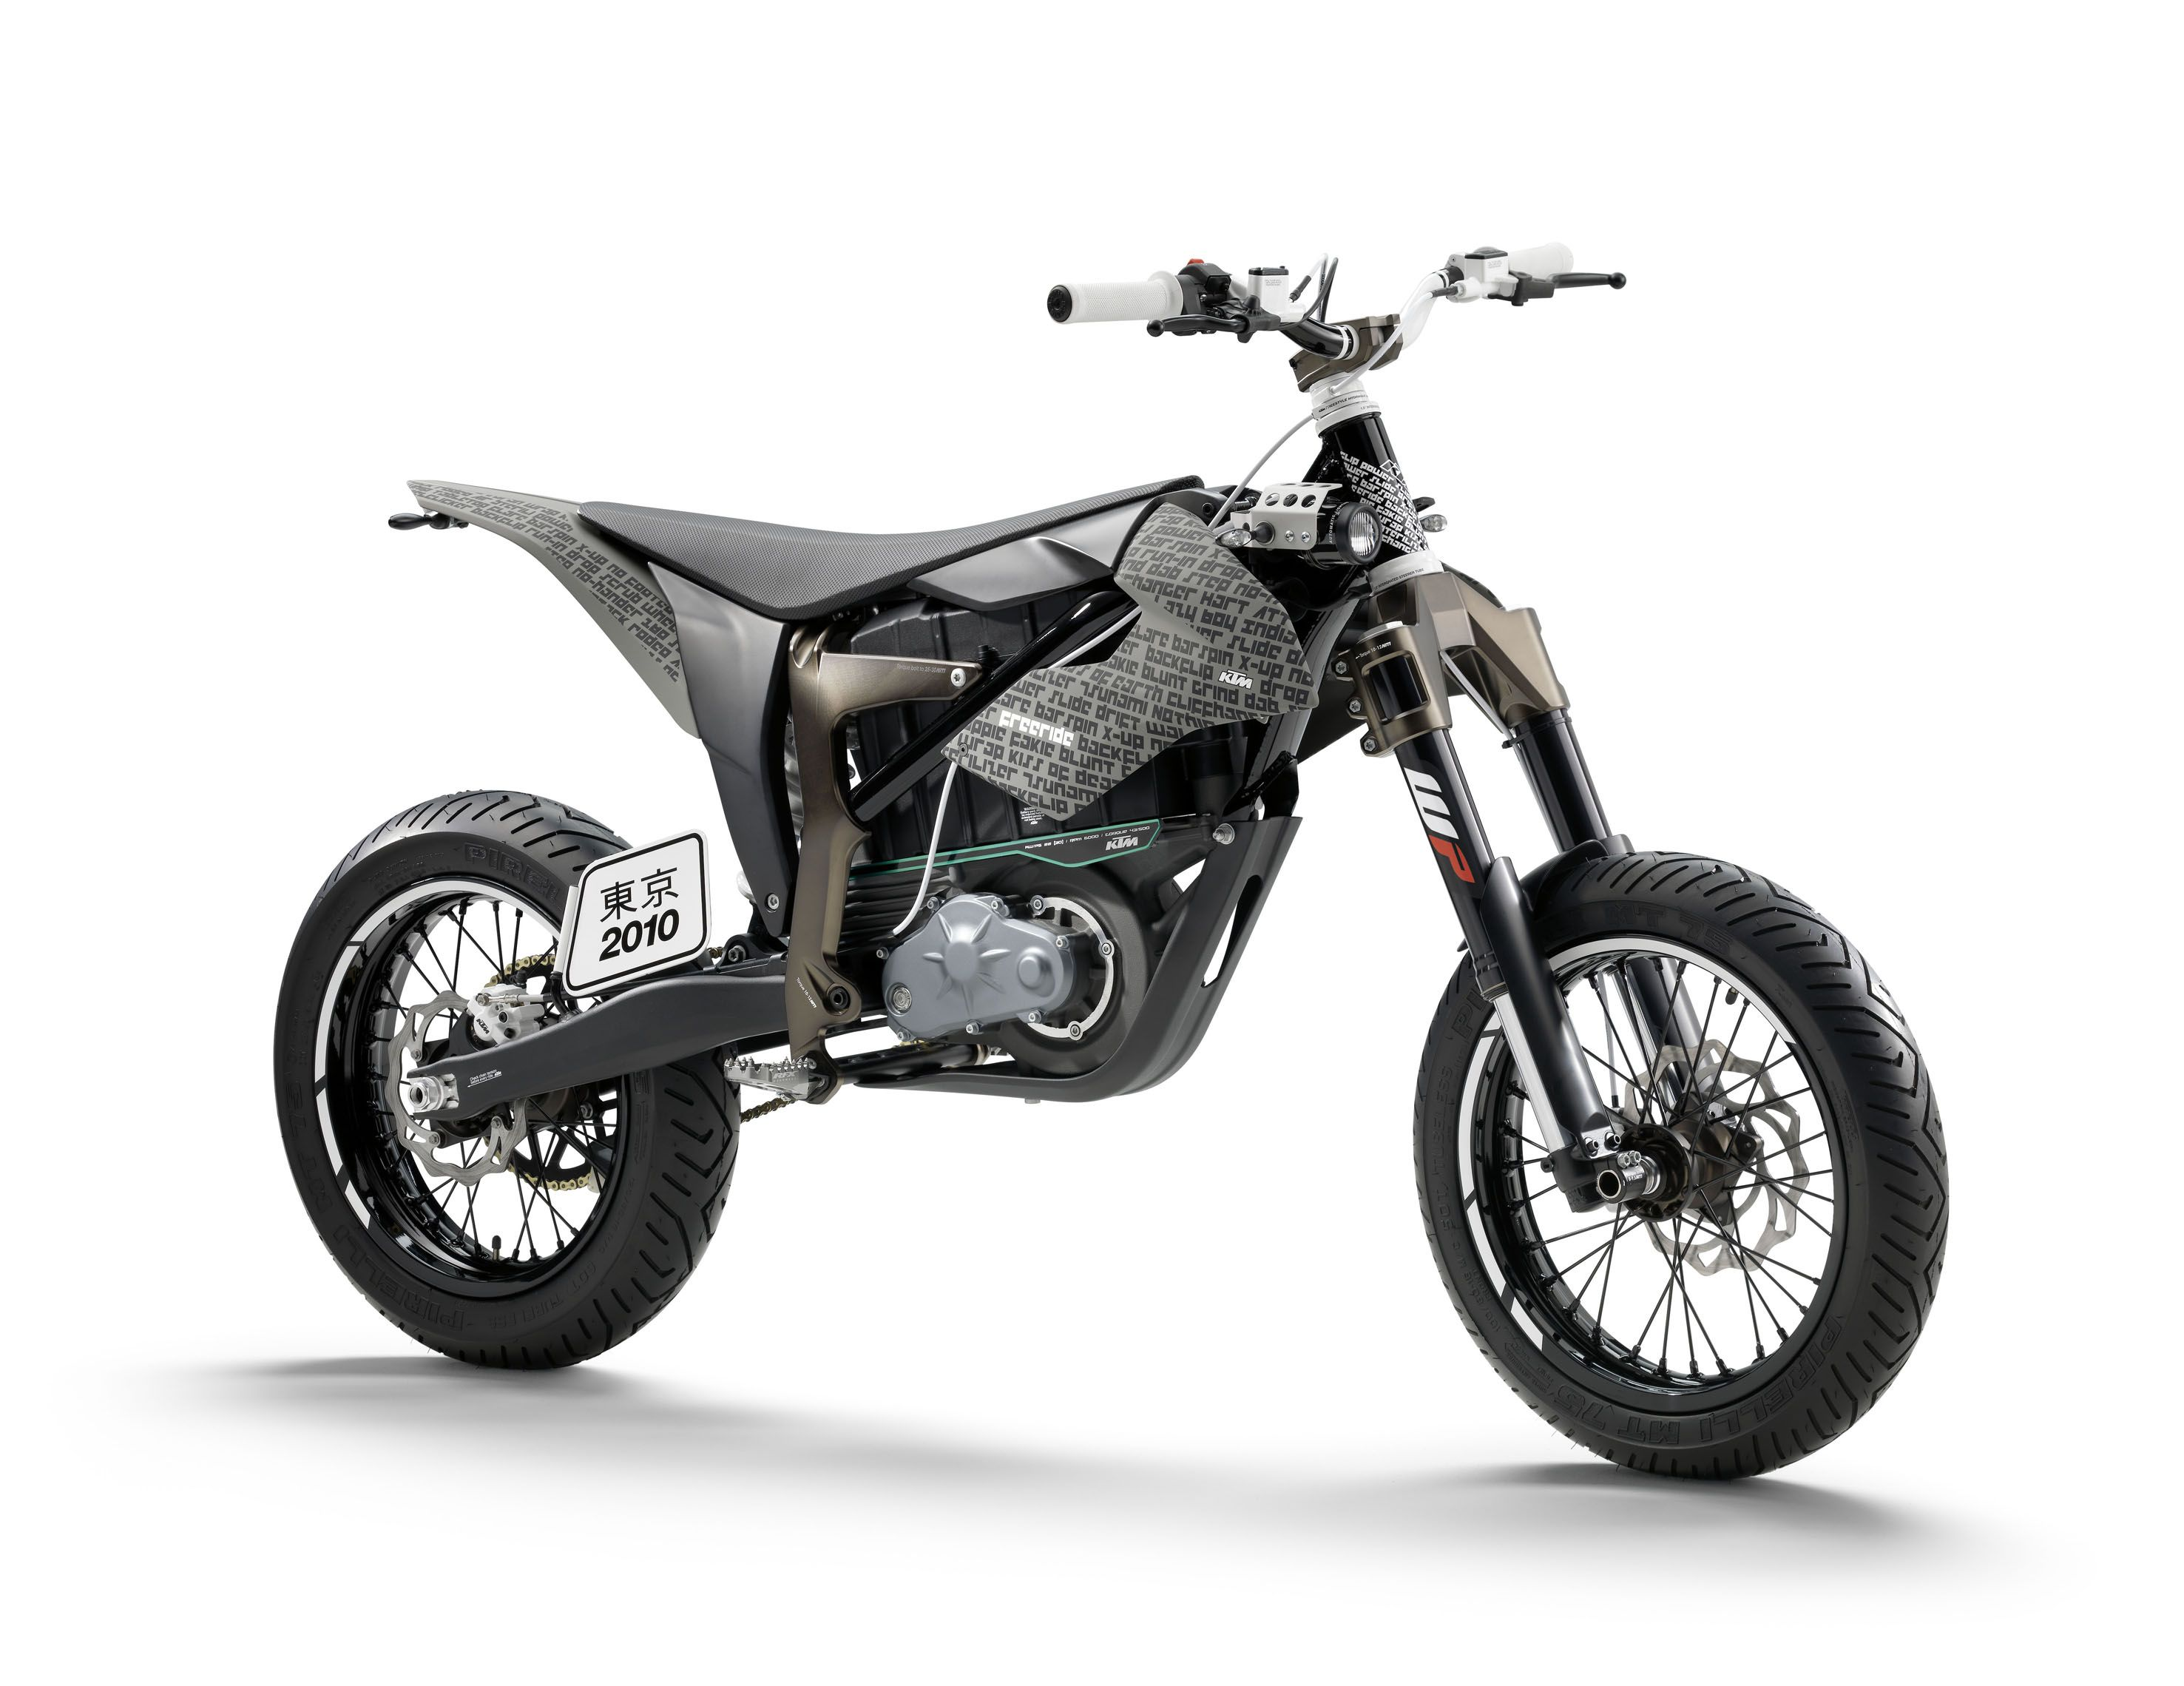 Supermoto ktm 690 stunt concept bikemotorcycletuned car tuning car - Ktm Concept Motorcycle Looks Like A Downtown Feeride